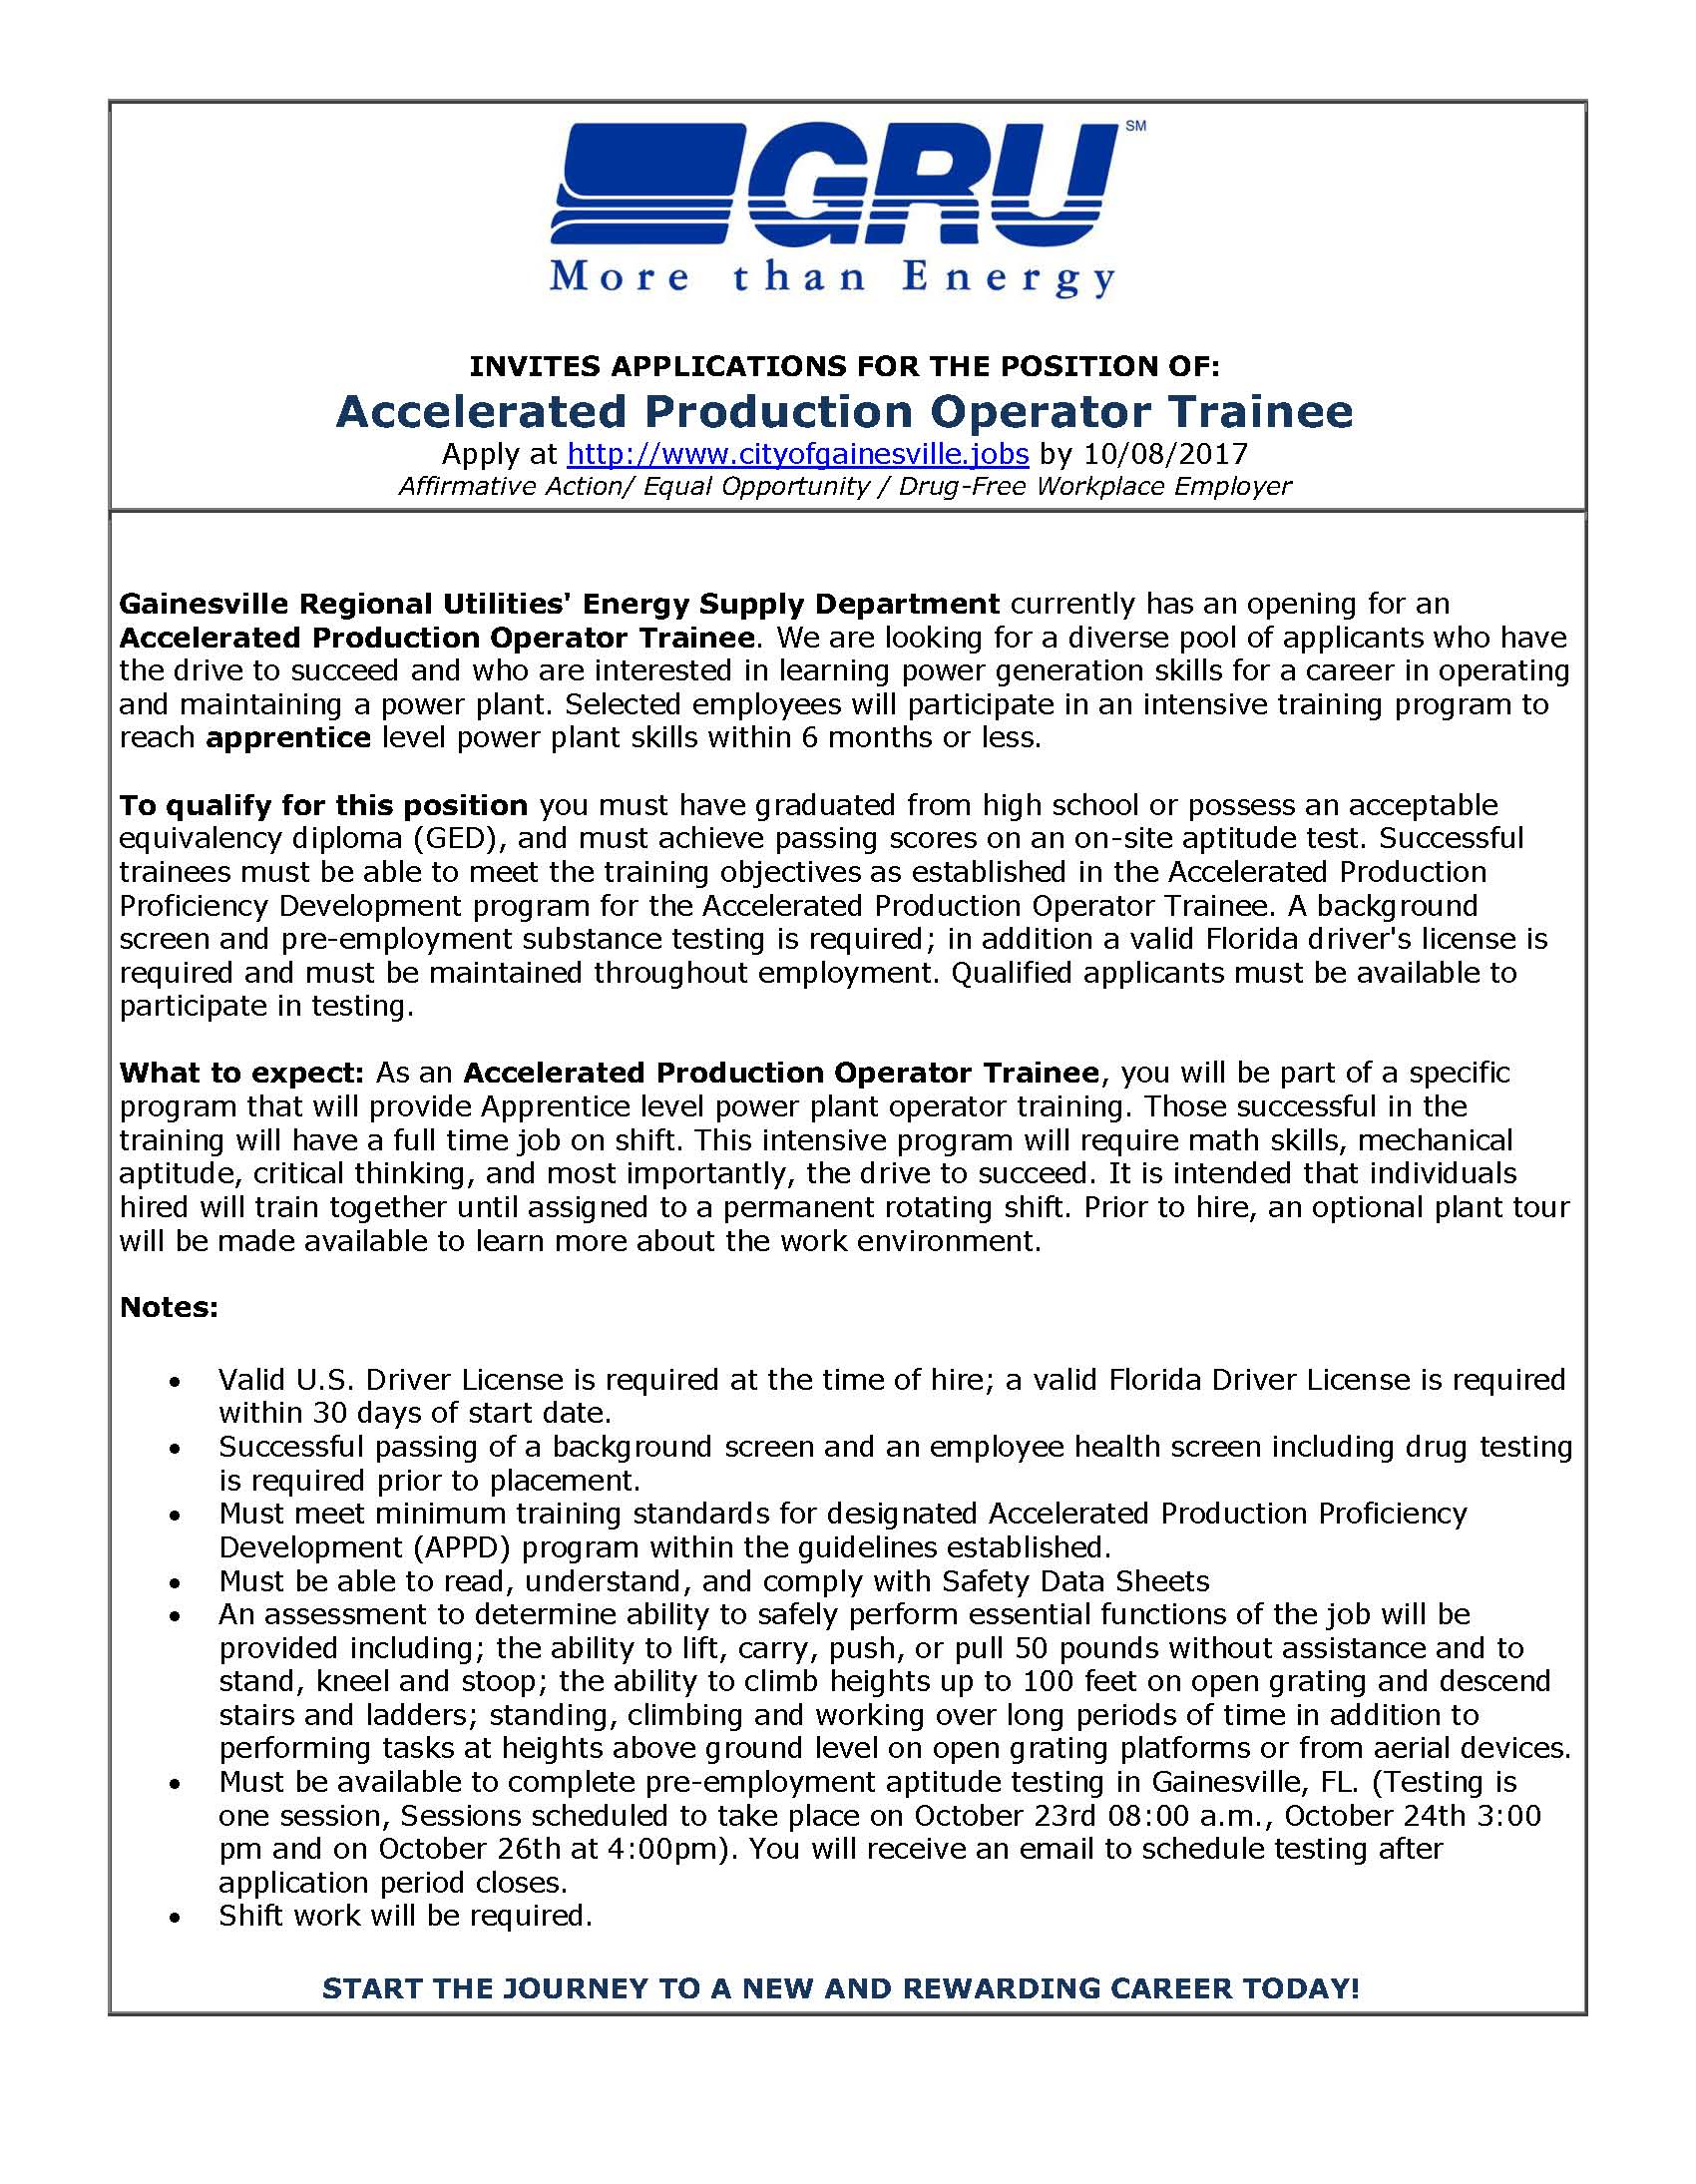 Accelerated Production Operator Trainee Wanted